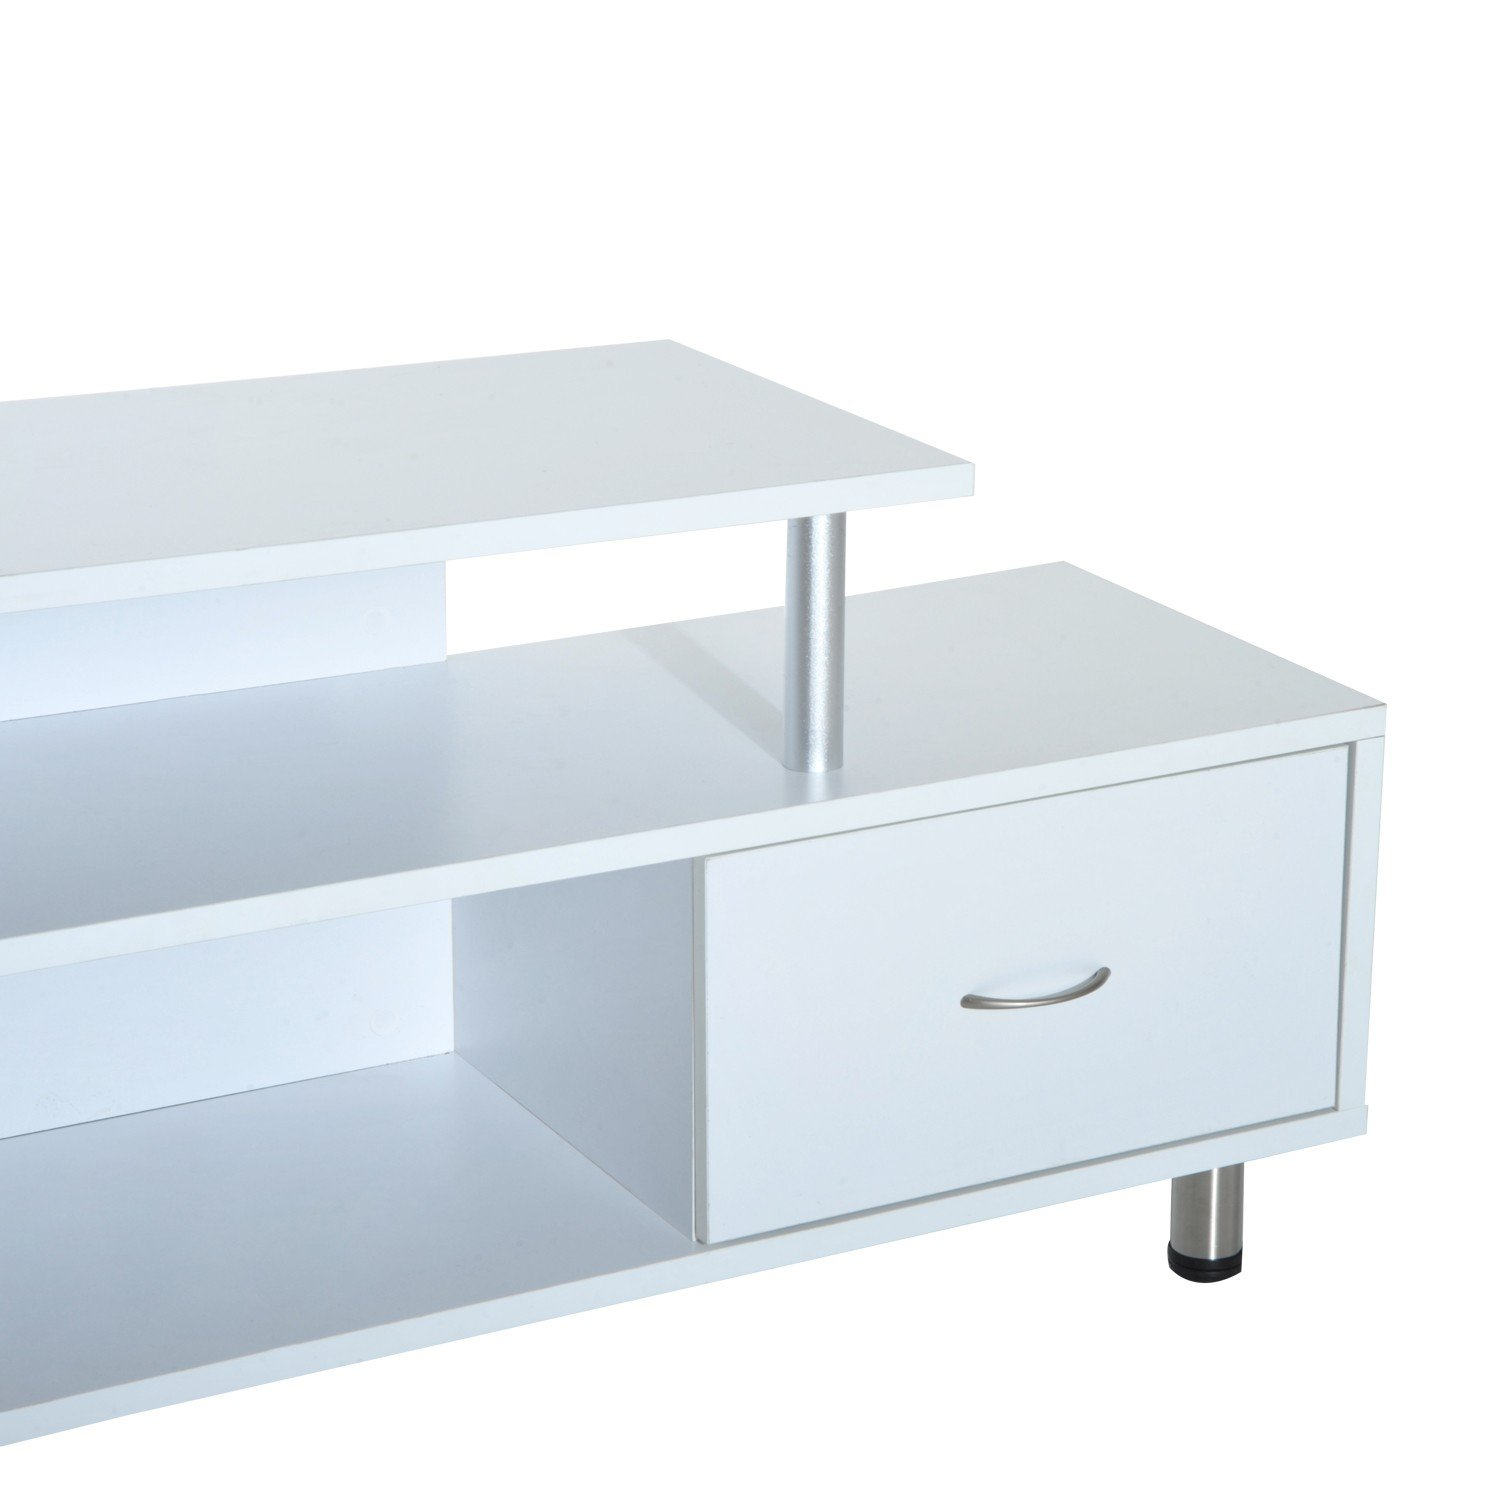 White TV Stand Flat Screen With Drawer And Open Shelf Display Unit Durable With Ebook